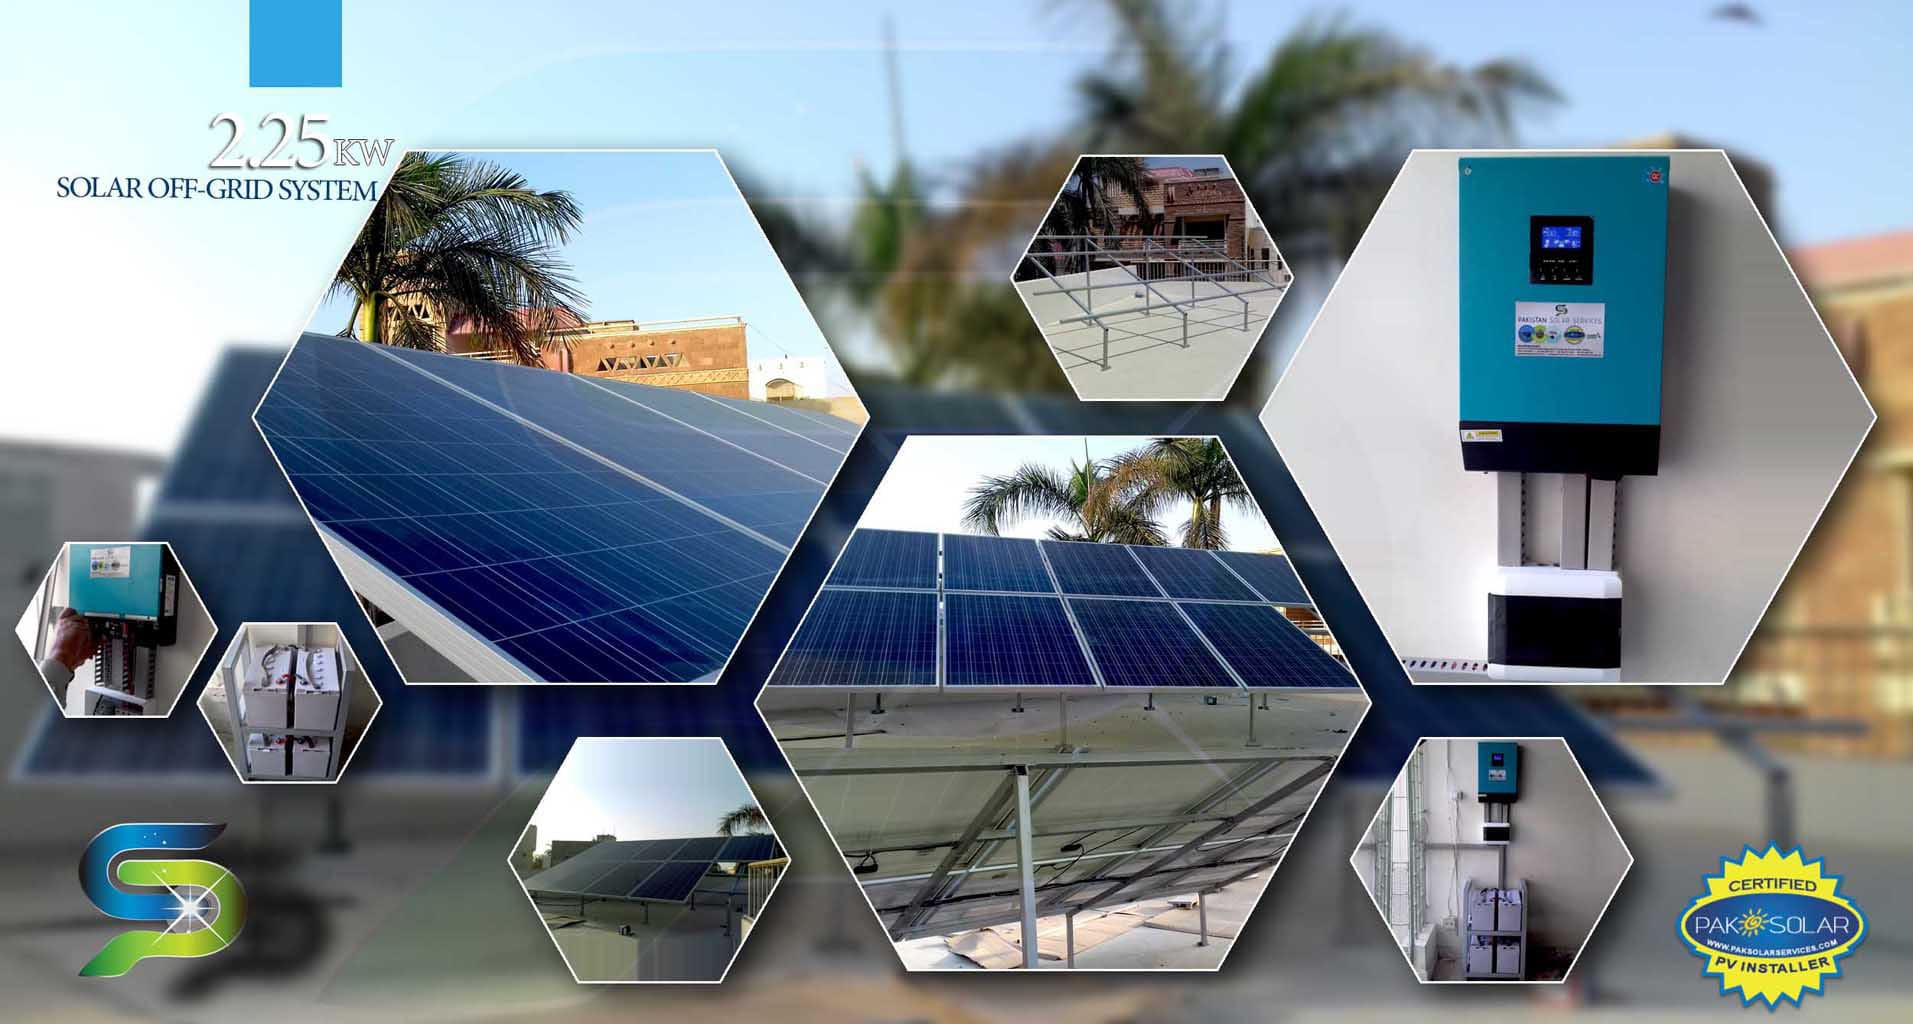 Pakistan Solar Services Solar Systems Solar Panels